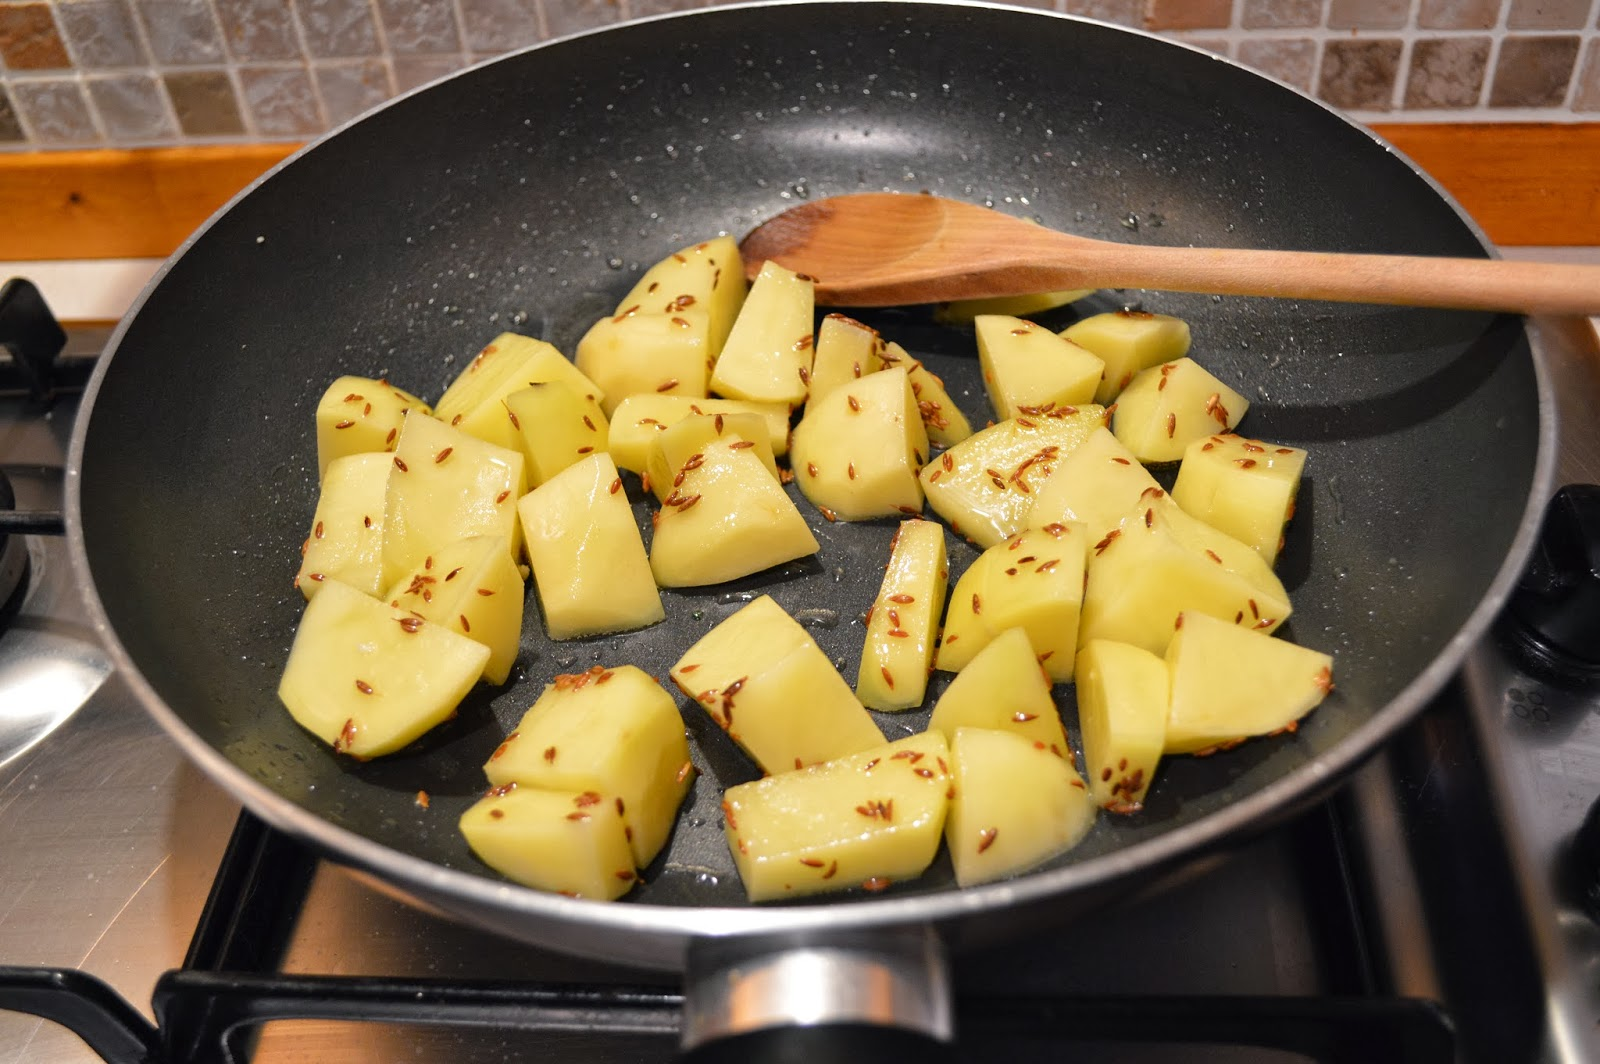 Frying the potatoes with cumin seeds